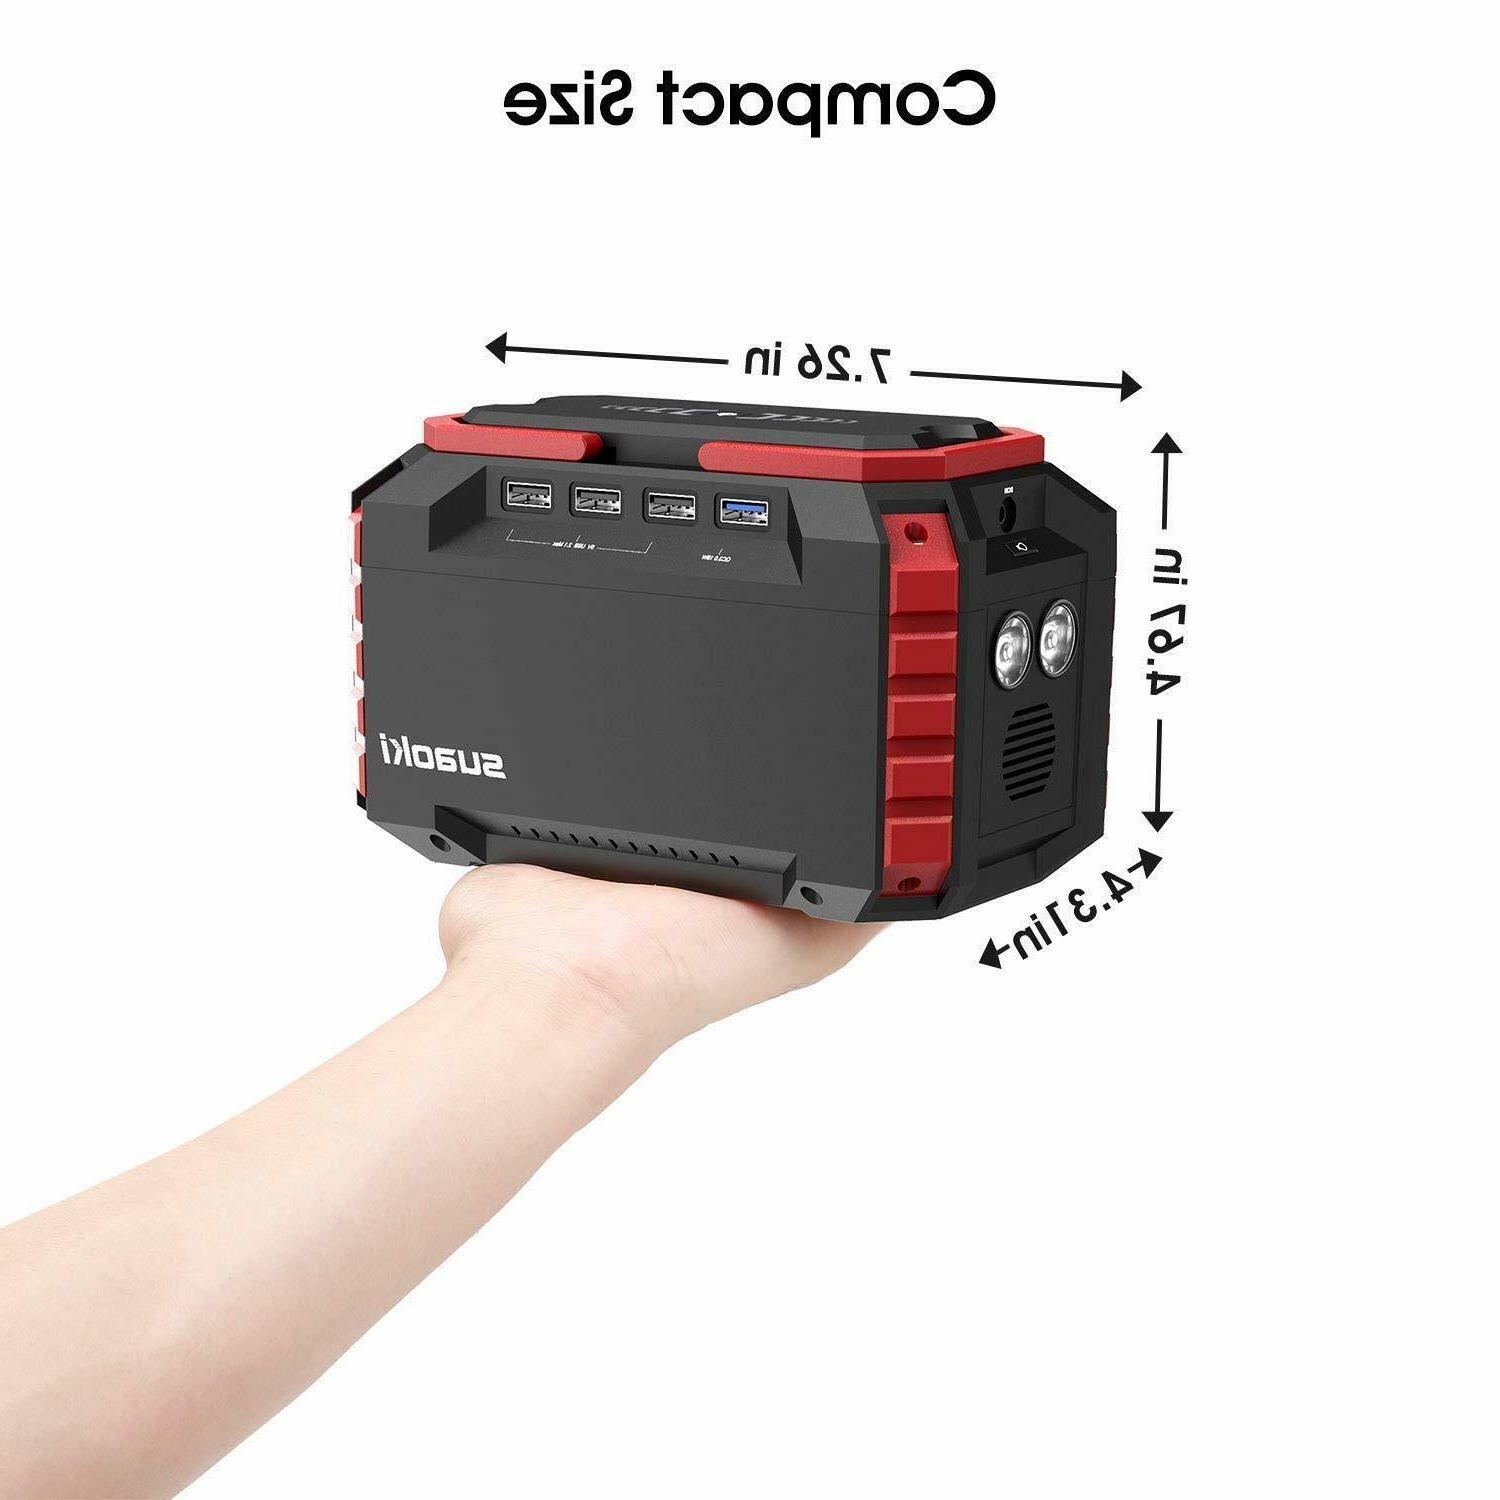 Suaoki S270 150Wh Power Generator Supply 150W Inverter Storage SOS